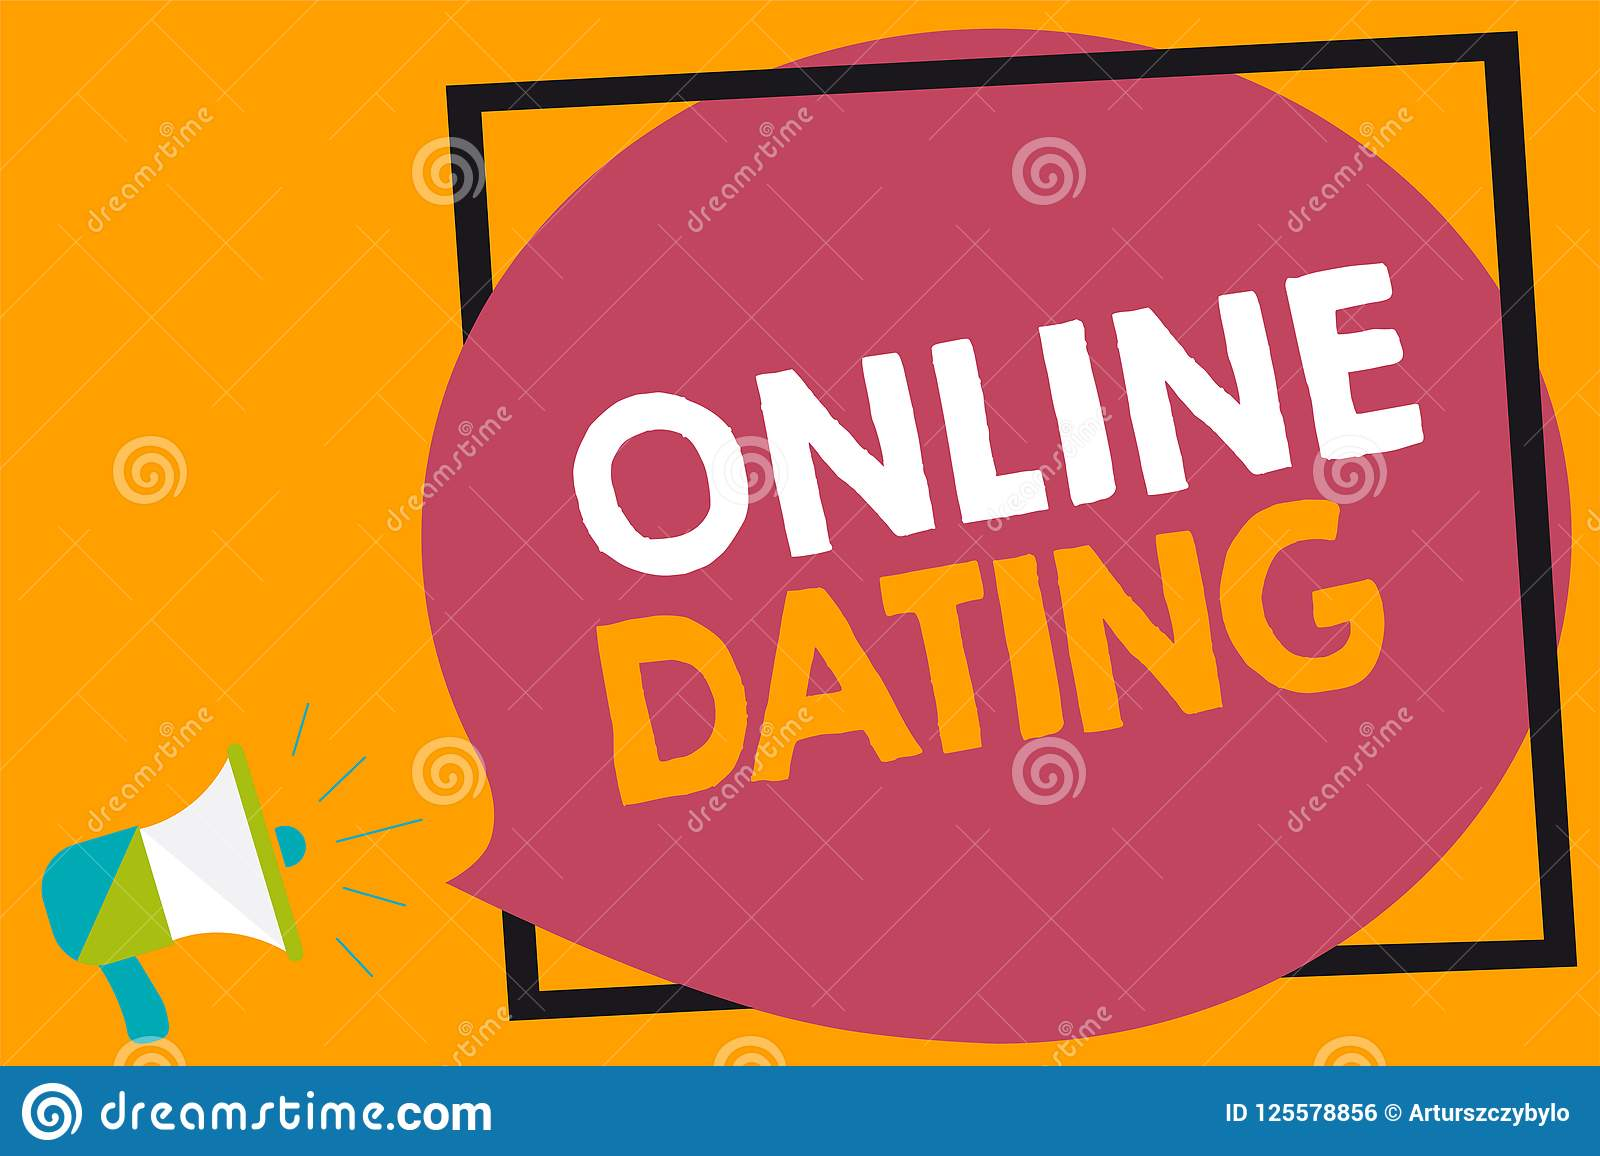 How to deal with online dating relationships